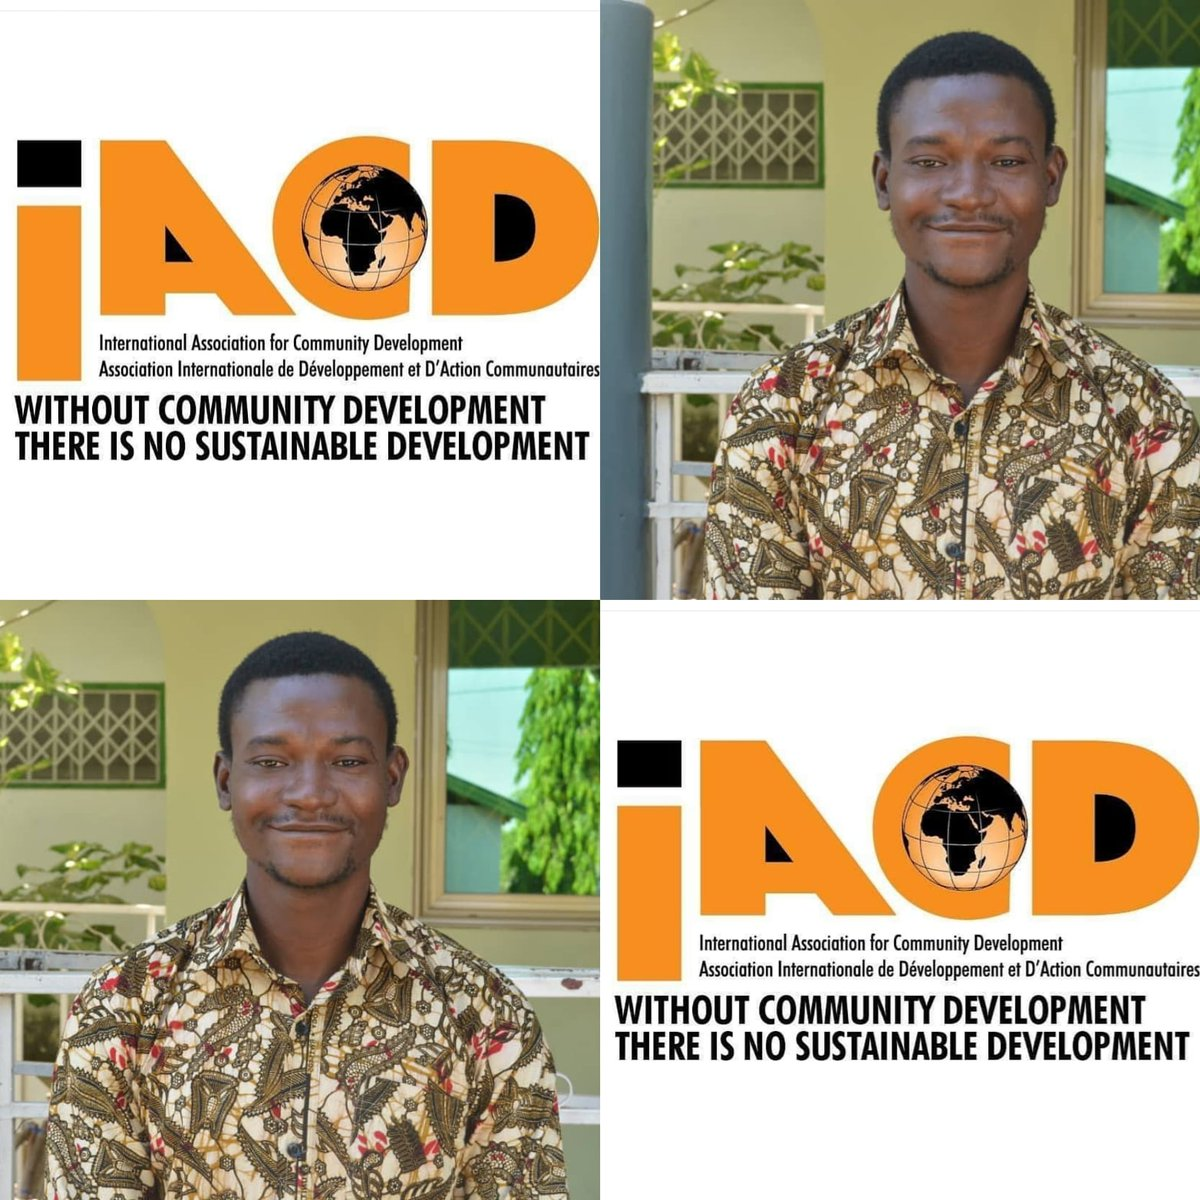 Today is the third #IACD  #youth member takeover! Follow one of our Youth Representatives Martin  from #Ghana on our #IACD Instagram story!pic.twitter.com/z7EPAqqf0G